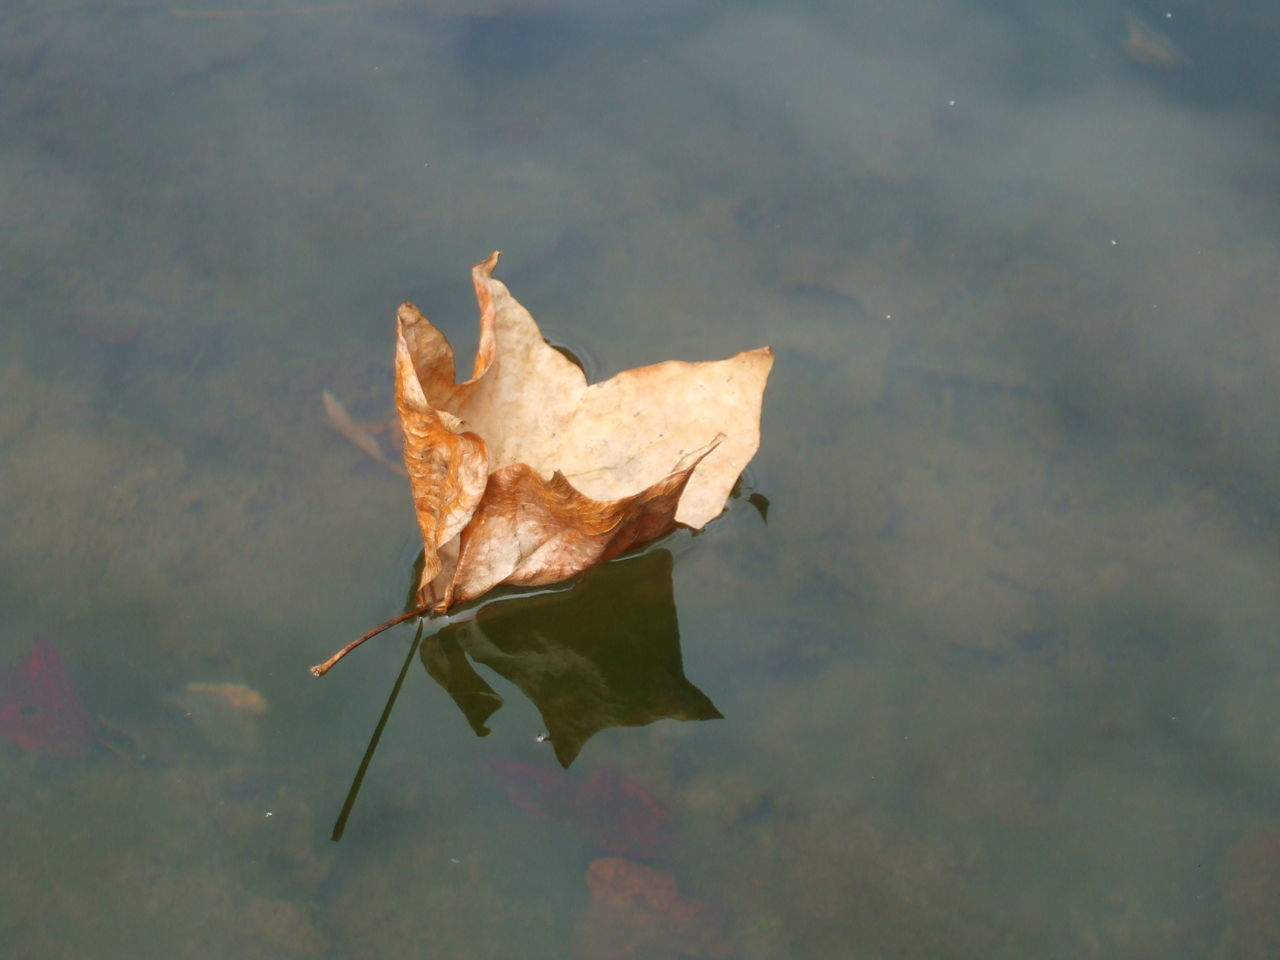 Autumn Beauty In Nature Change Close-up Day Dry Fragility Lake Leaf Maple Maple Leaf Nature No People Outdoors Reflection Water Wet